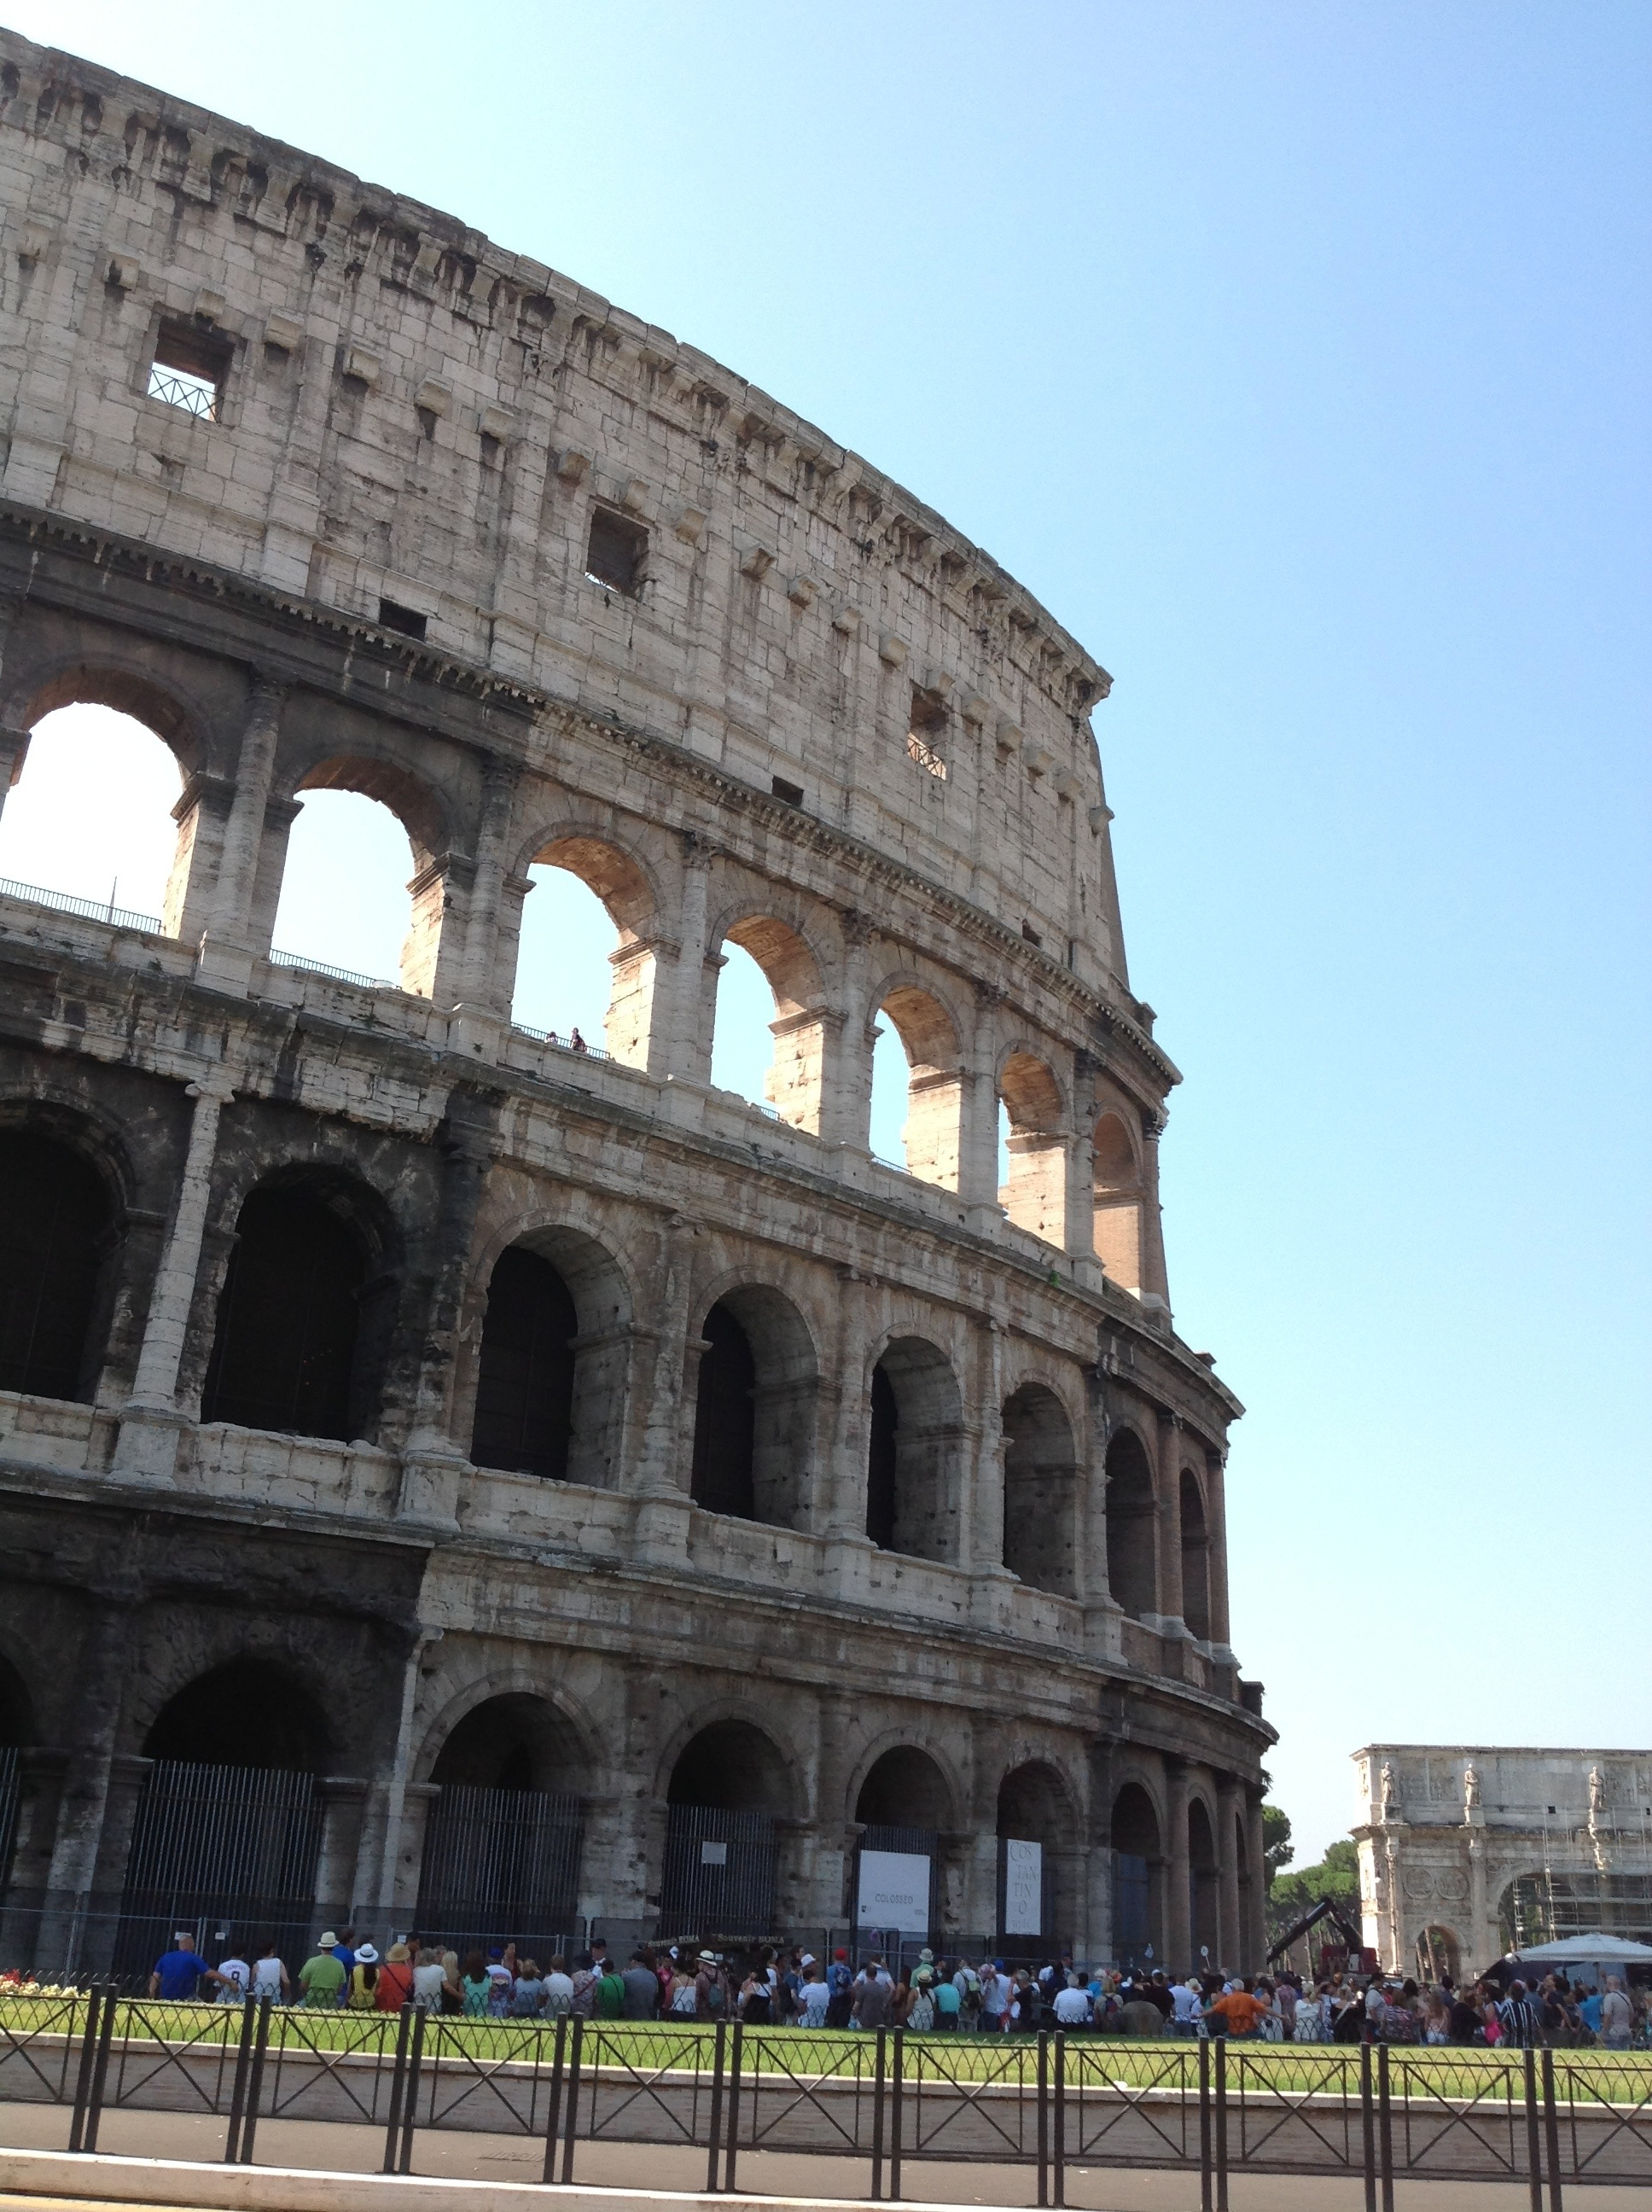 Il Colosseo (The — truly colossal — Colosseum);  70 C.E.